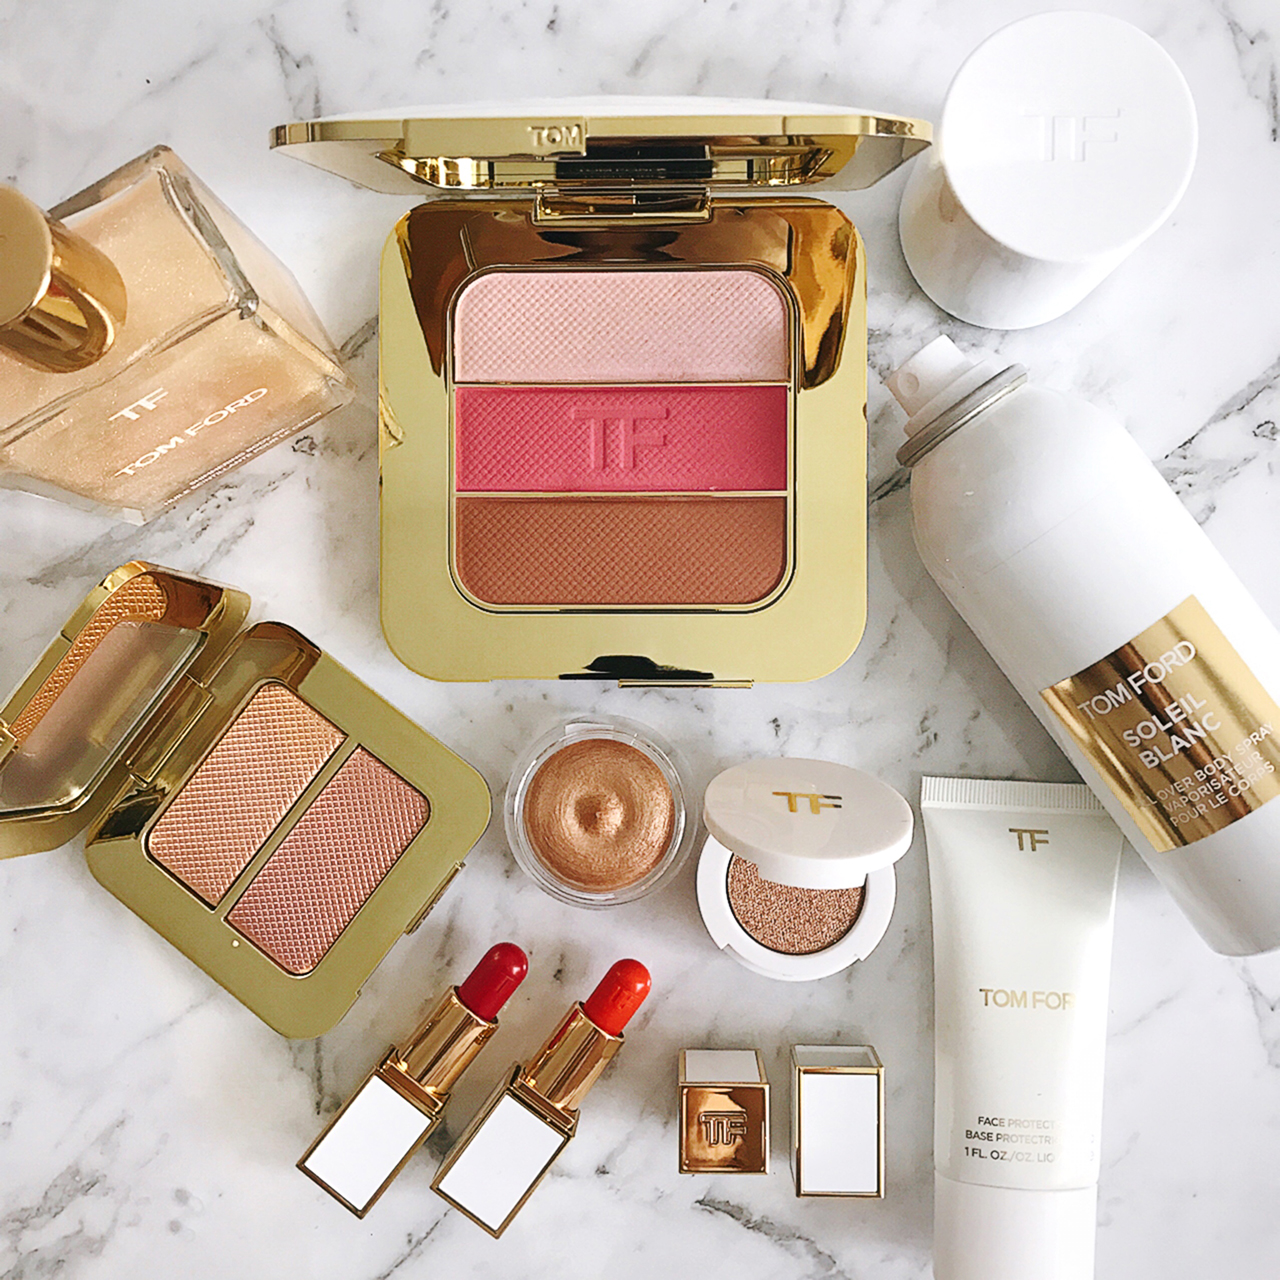 Tom Ford Soleil 2017 Summer Collection